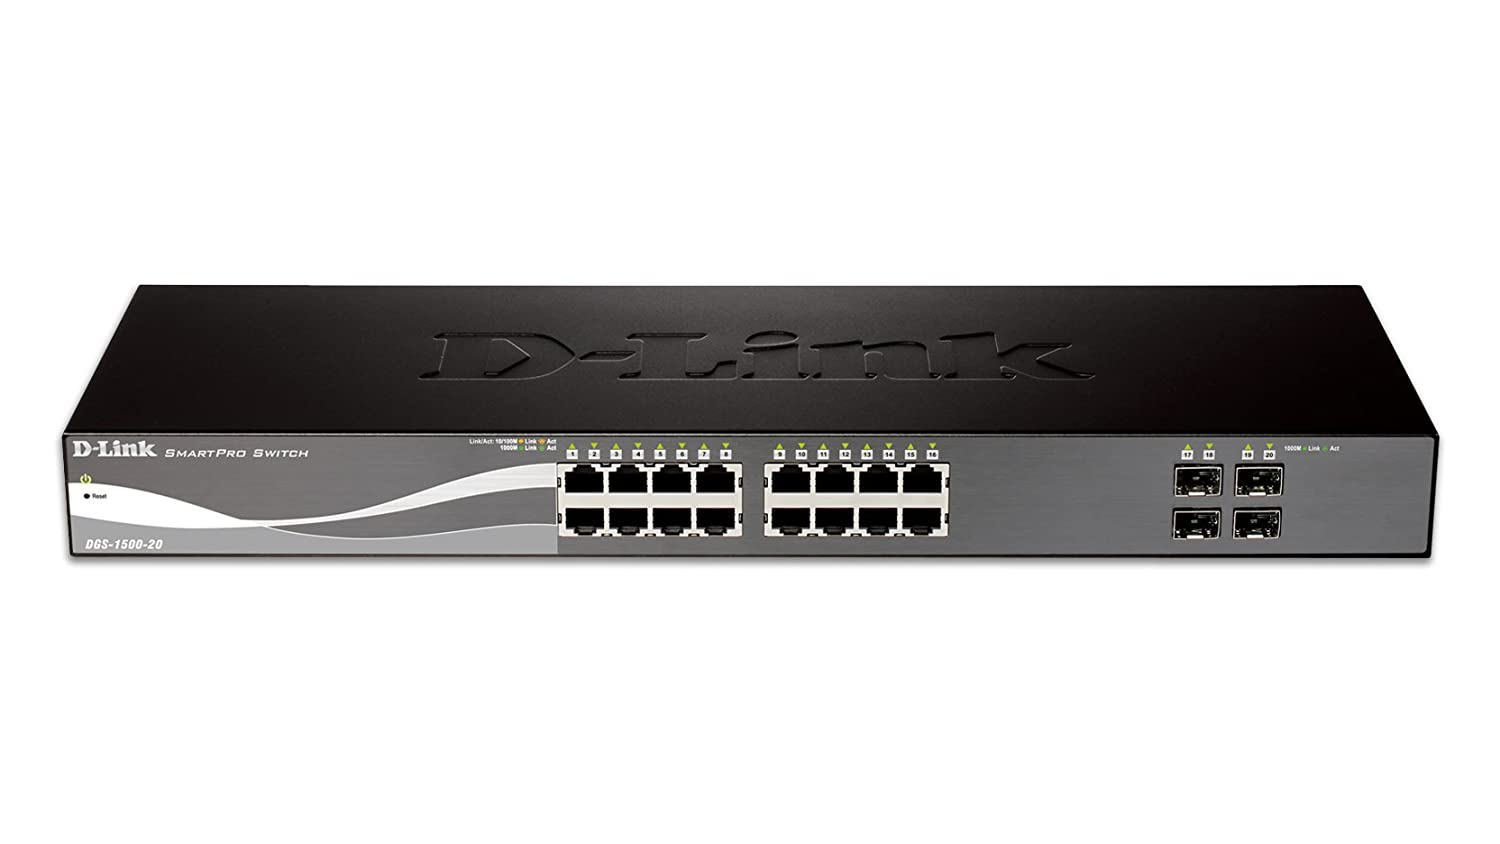 D Link Systems Inc Smartpro Layer 3 Switch Dgs 1500 How To Configure Intervlan Routing On Switches Cisco 20 Computers Accessories